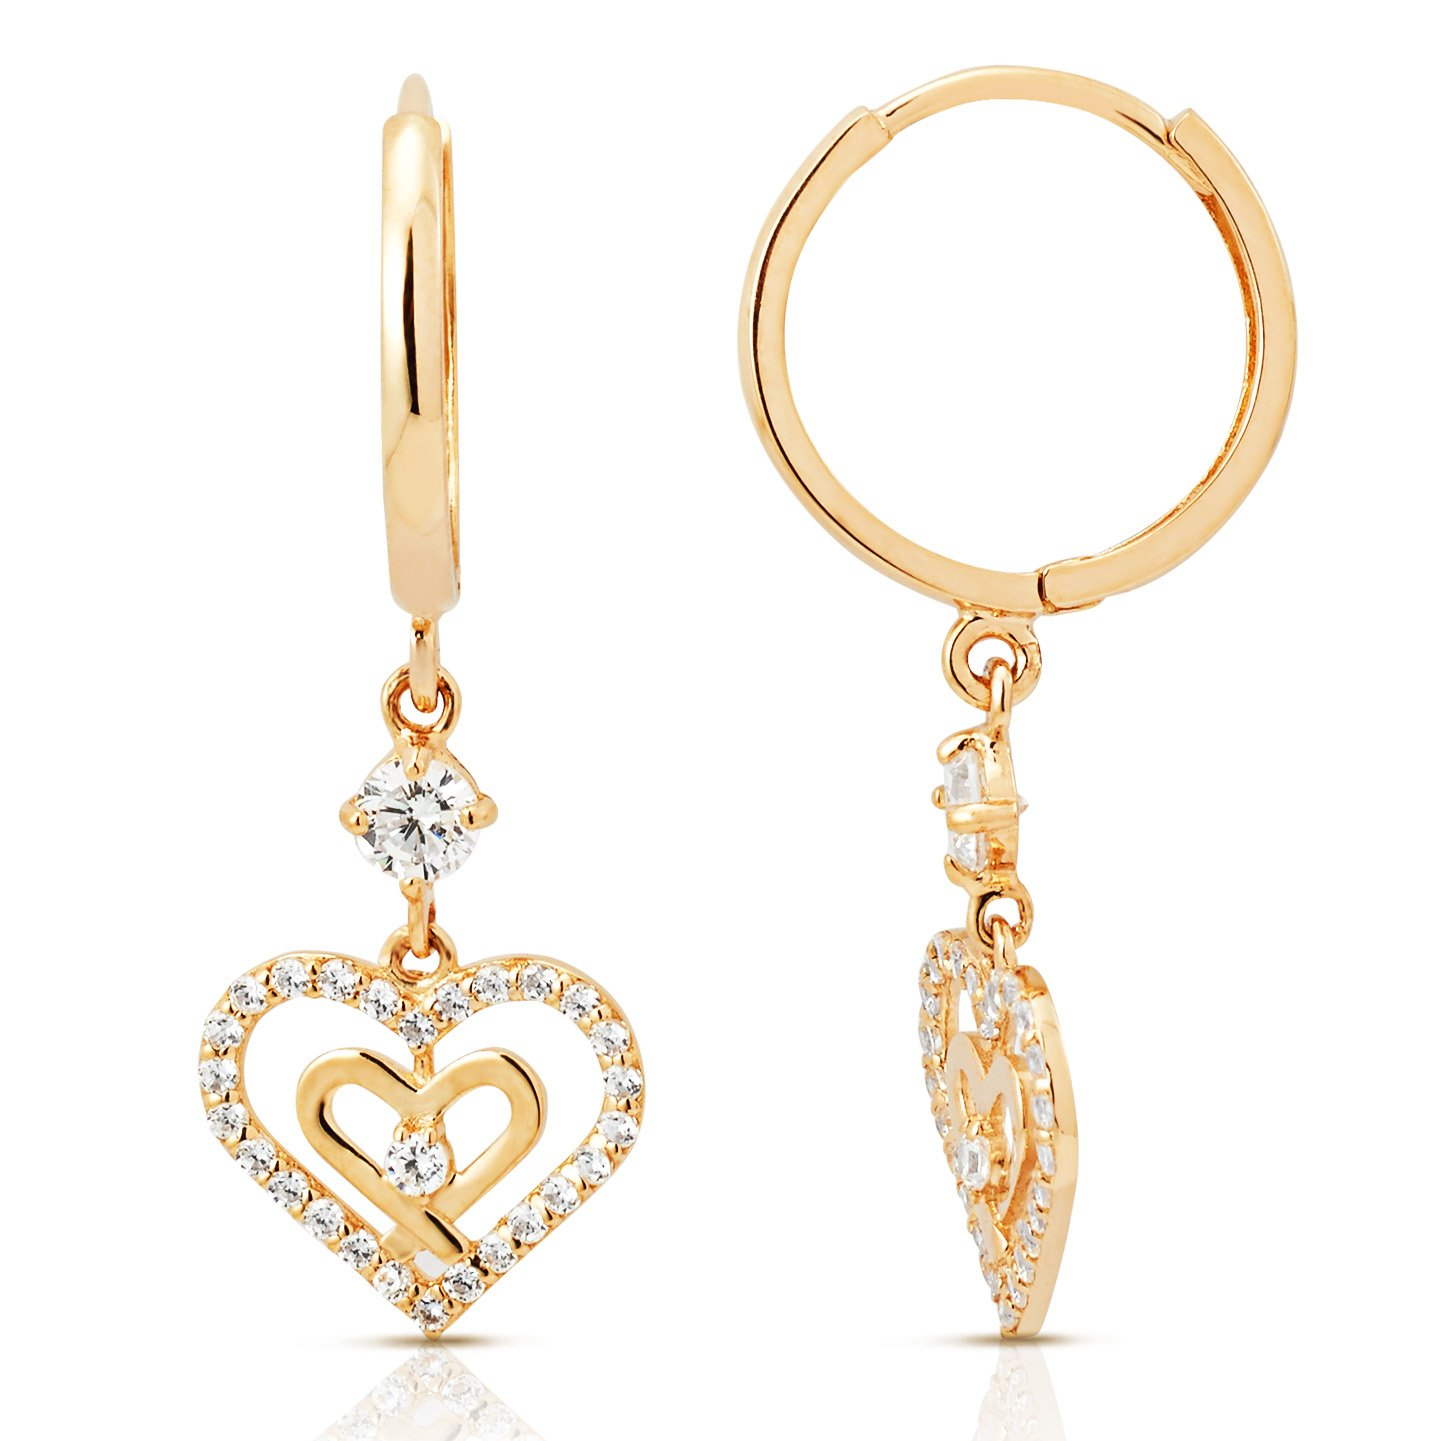 Double Heart CZ Dangling Earring in 14K Yellow Gold